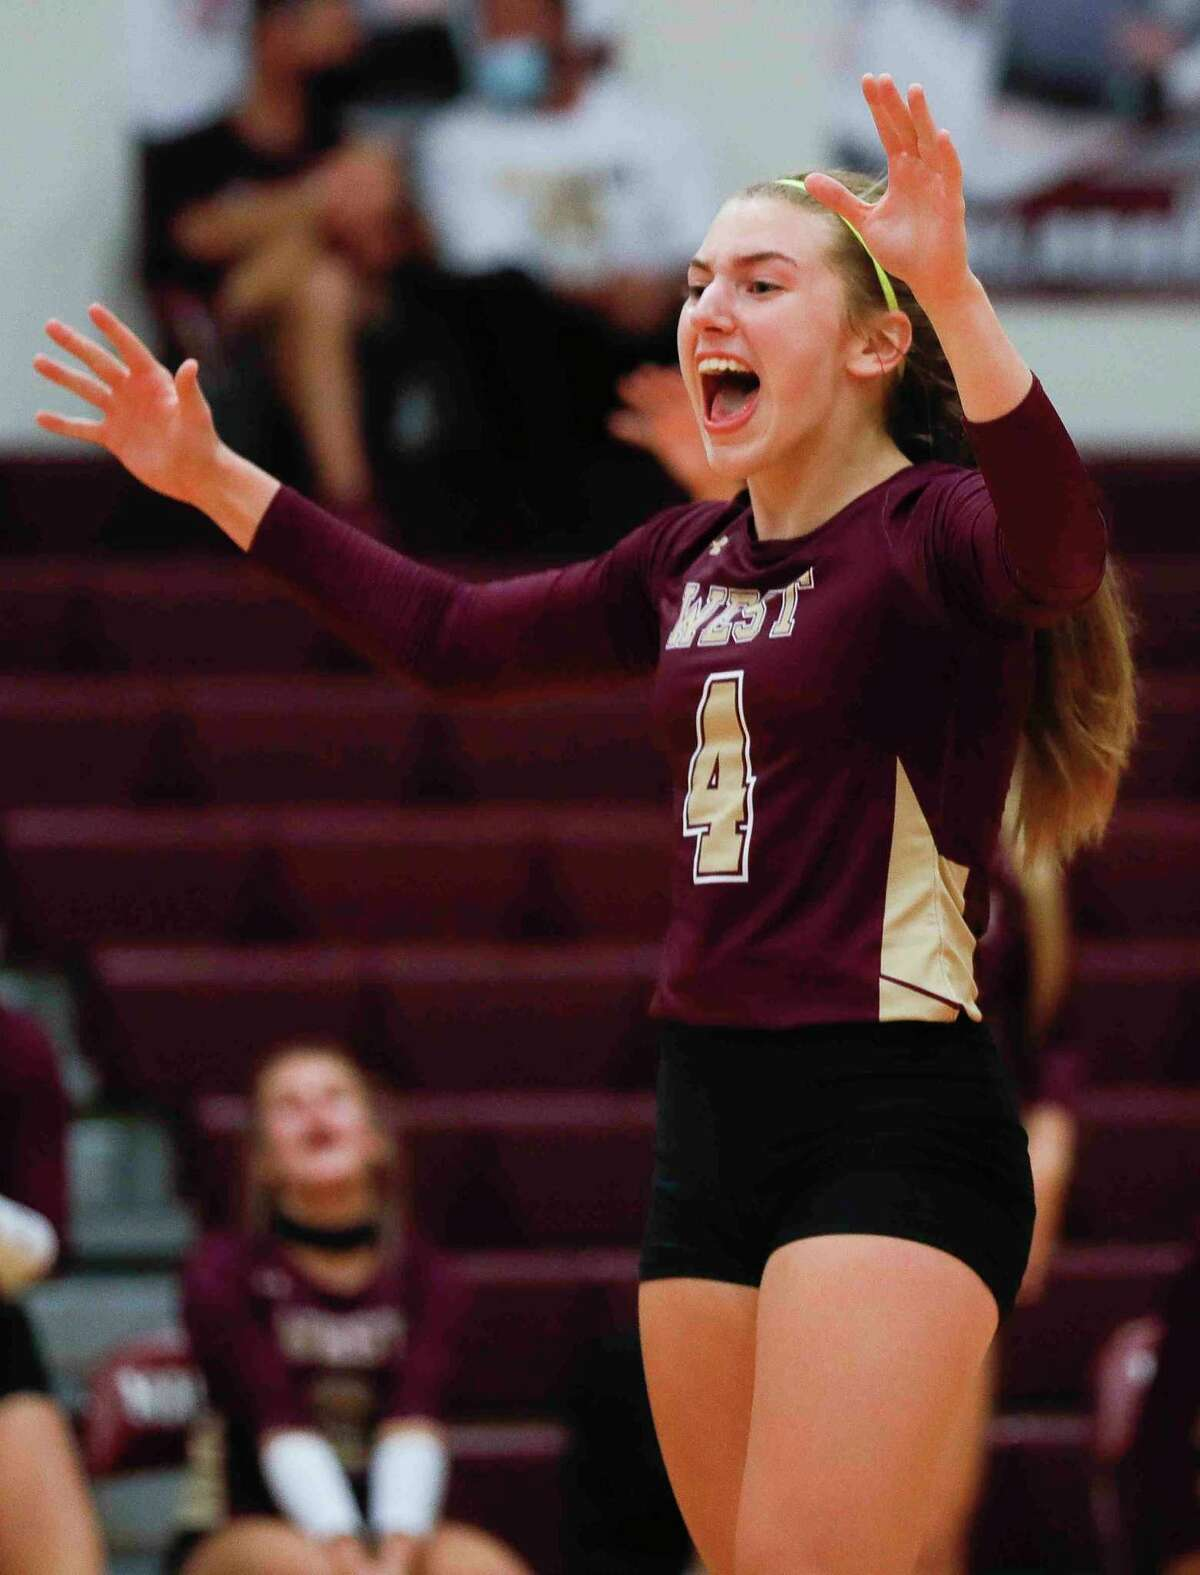 Magnolia West setter Bethany May (4) reacts after a point during the first set of a District 19-5A high school volleyball match at Magnolia High School, Tuesday, Oct. 6, 2020, in Magnolia.